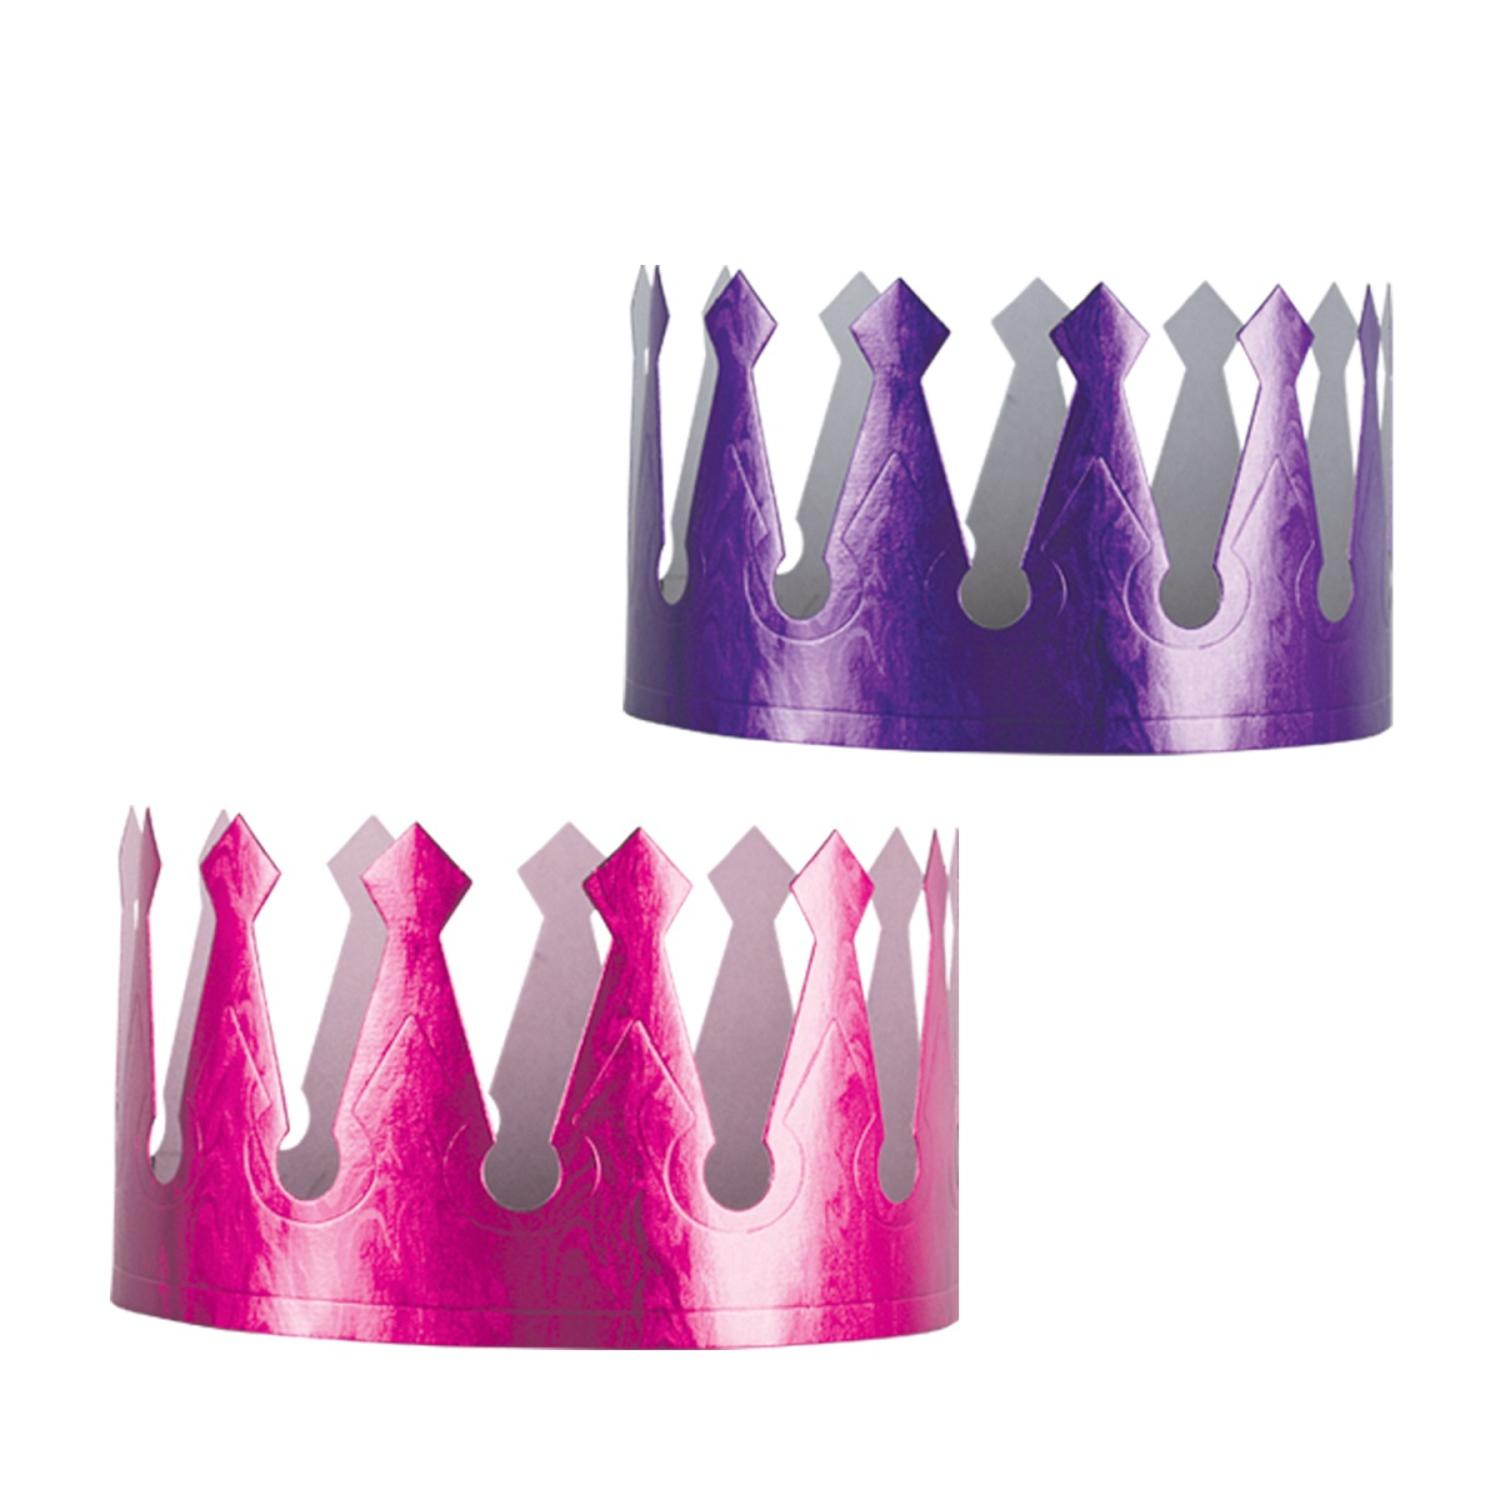 Club Pack of 72 Purple and Pink Embossed Foil Crown Party Hats 3.75""